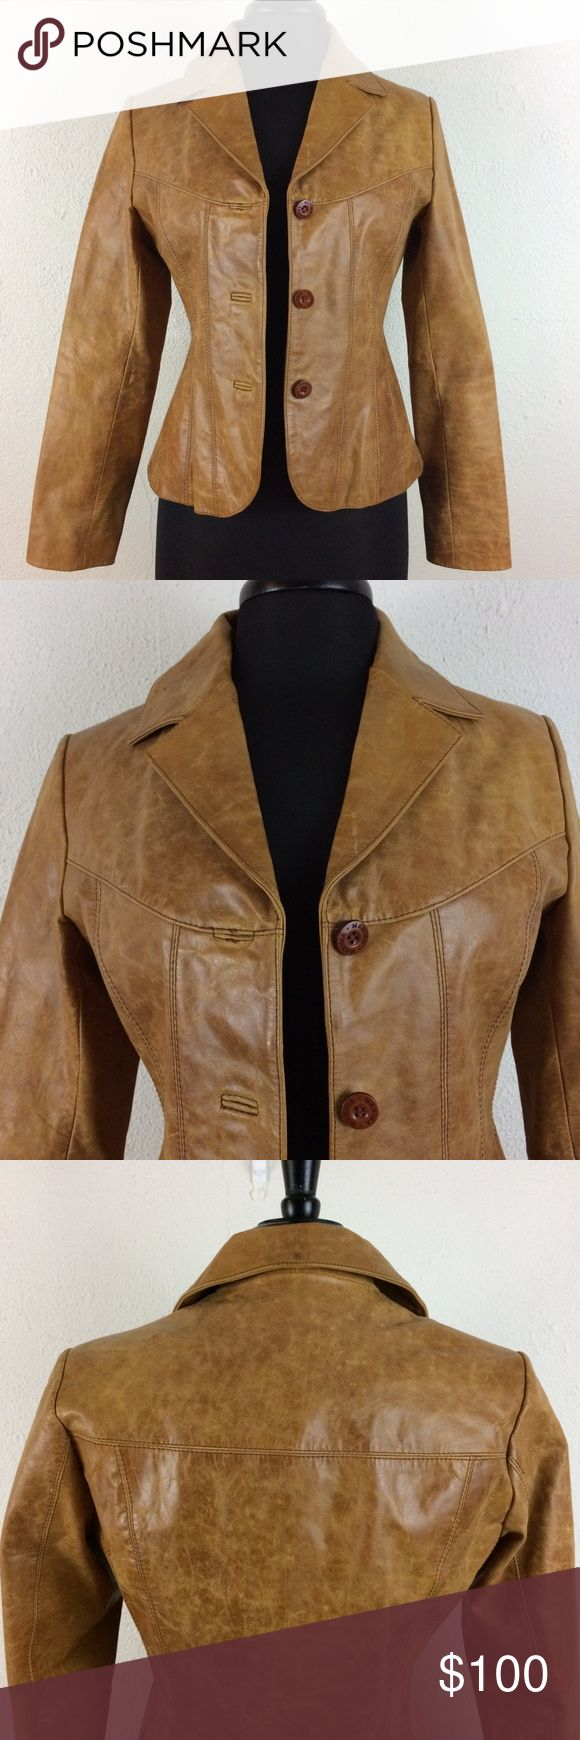 🔥SALE!🔥Wilson Leather LightWashed Leather Jacket SALE! $50 OFF Ends 1/31/18. High quality brand; paisley lining. Mint condition. Wilsons Leather Jackets & Coats